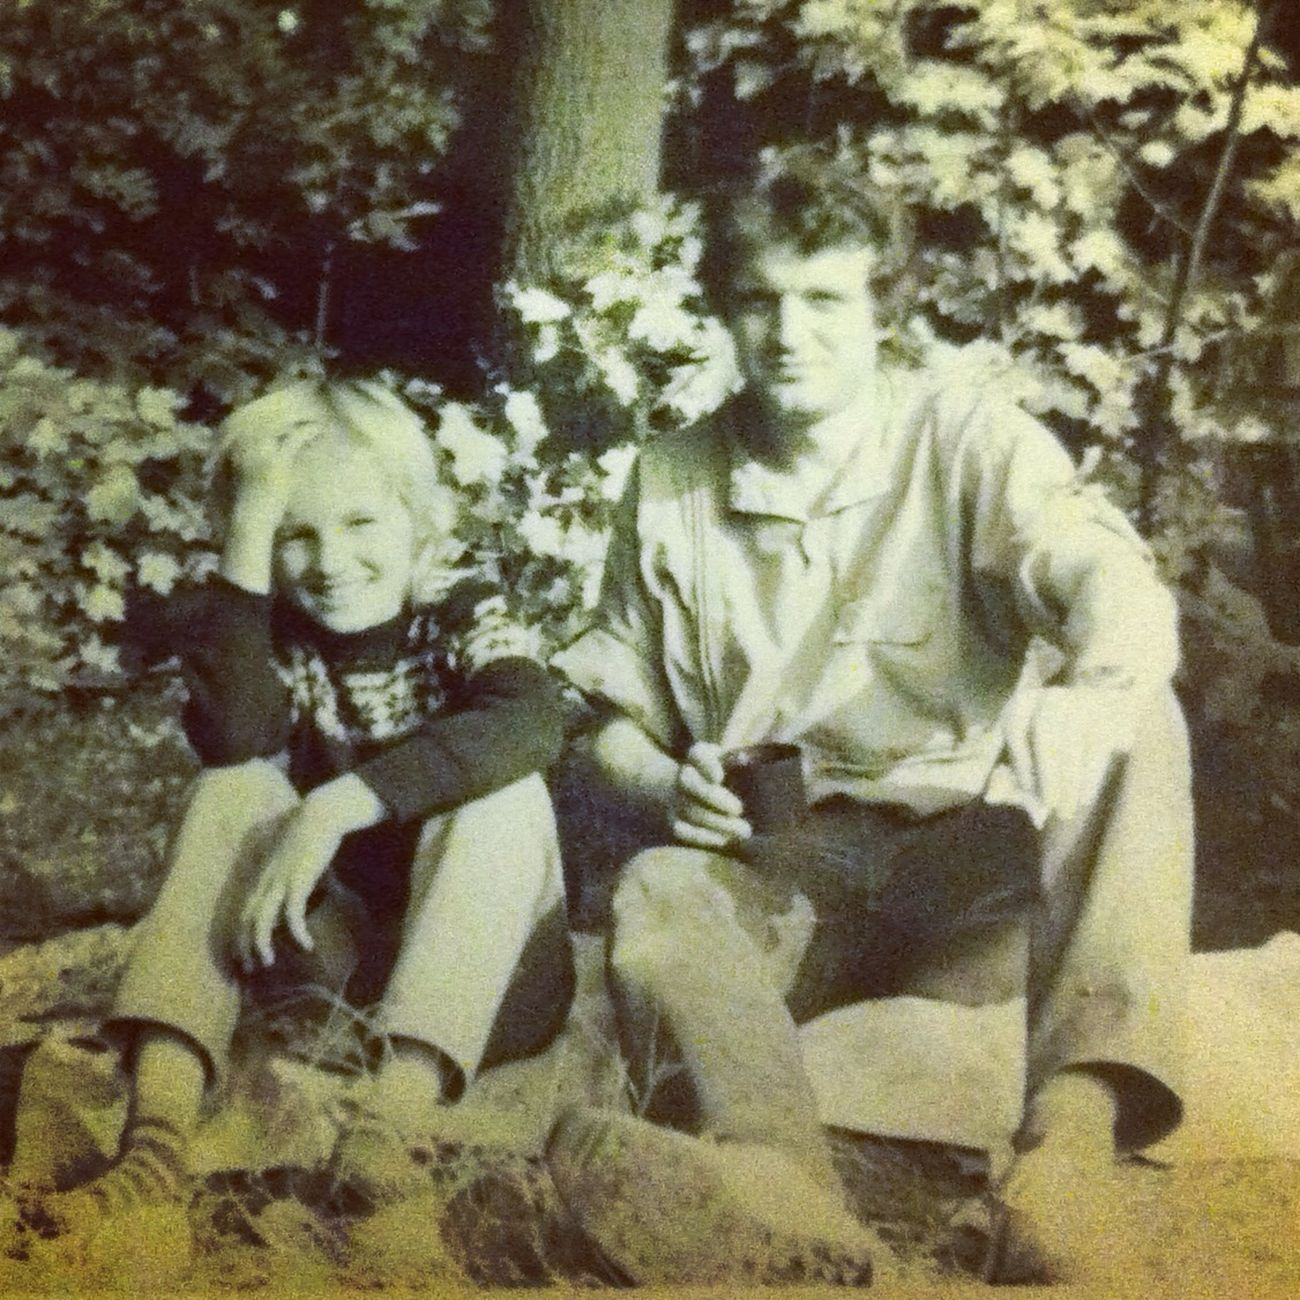 something private today !! me and my dad quite a long time ago ;)